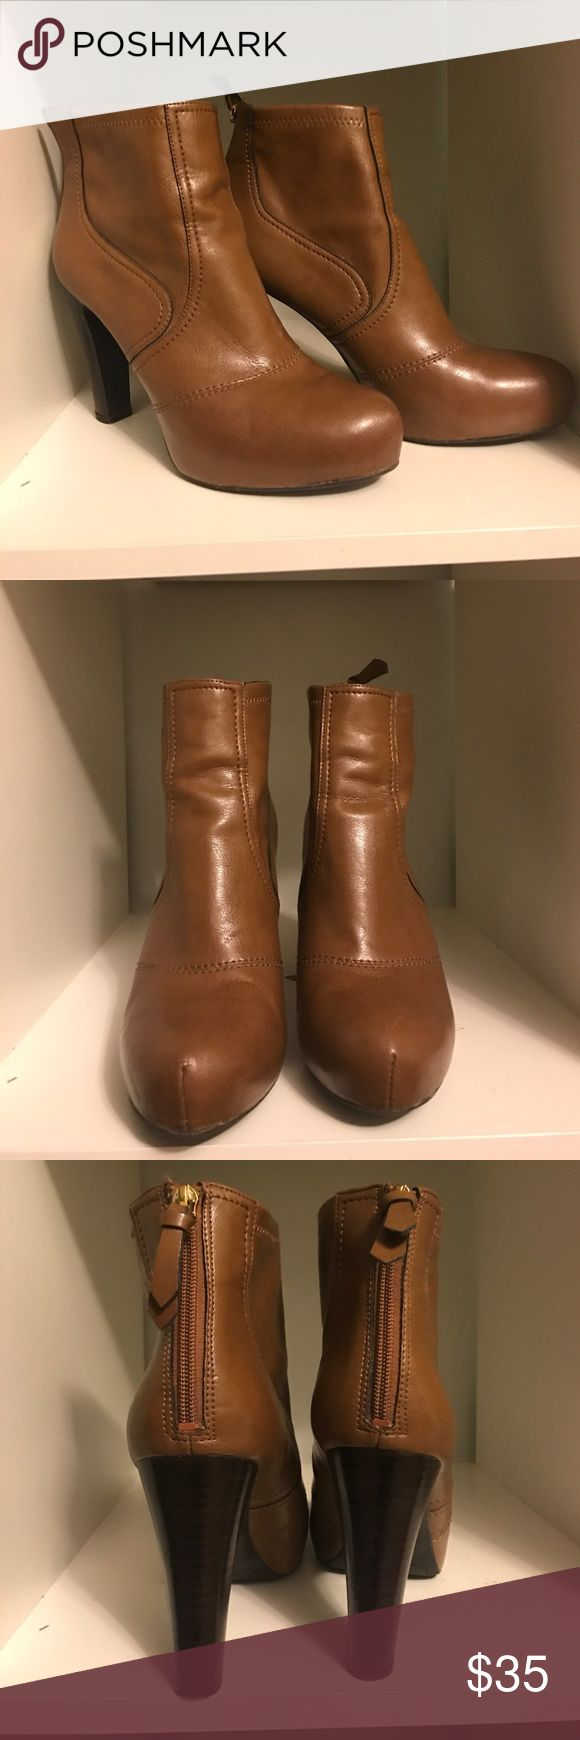 Franco Sarto Artist Collection brown heel boots Franco Sarto Artist Collection brown faux leather heel ankle boots with zip at back and wooden heels. Like new condition.  Only minor scuffing to bottoms Franco Sarto Shoes Ankle Boots & Booties